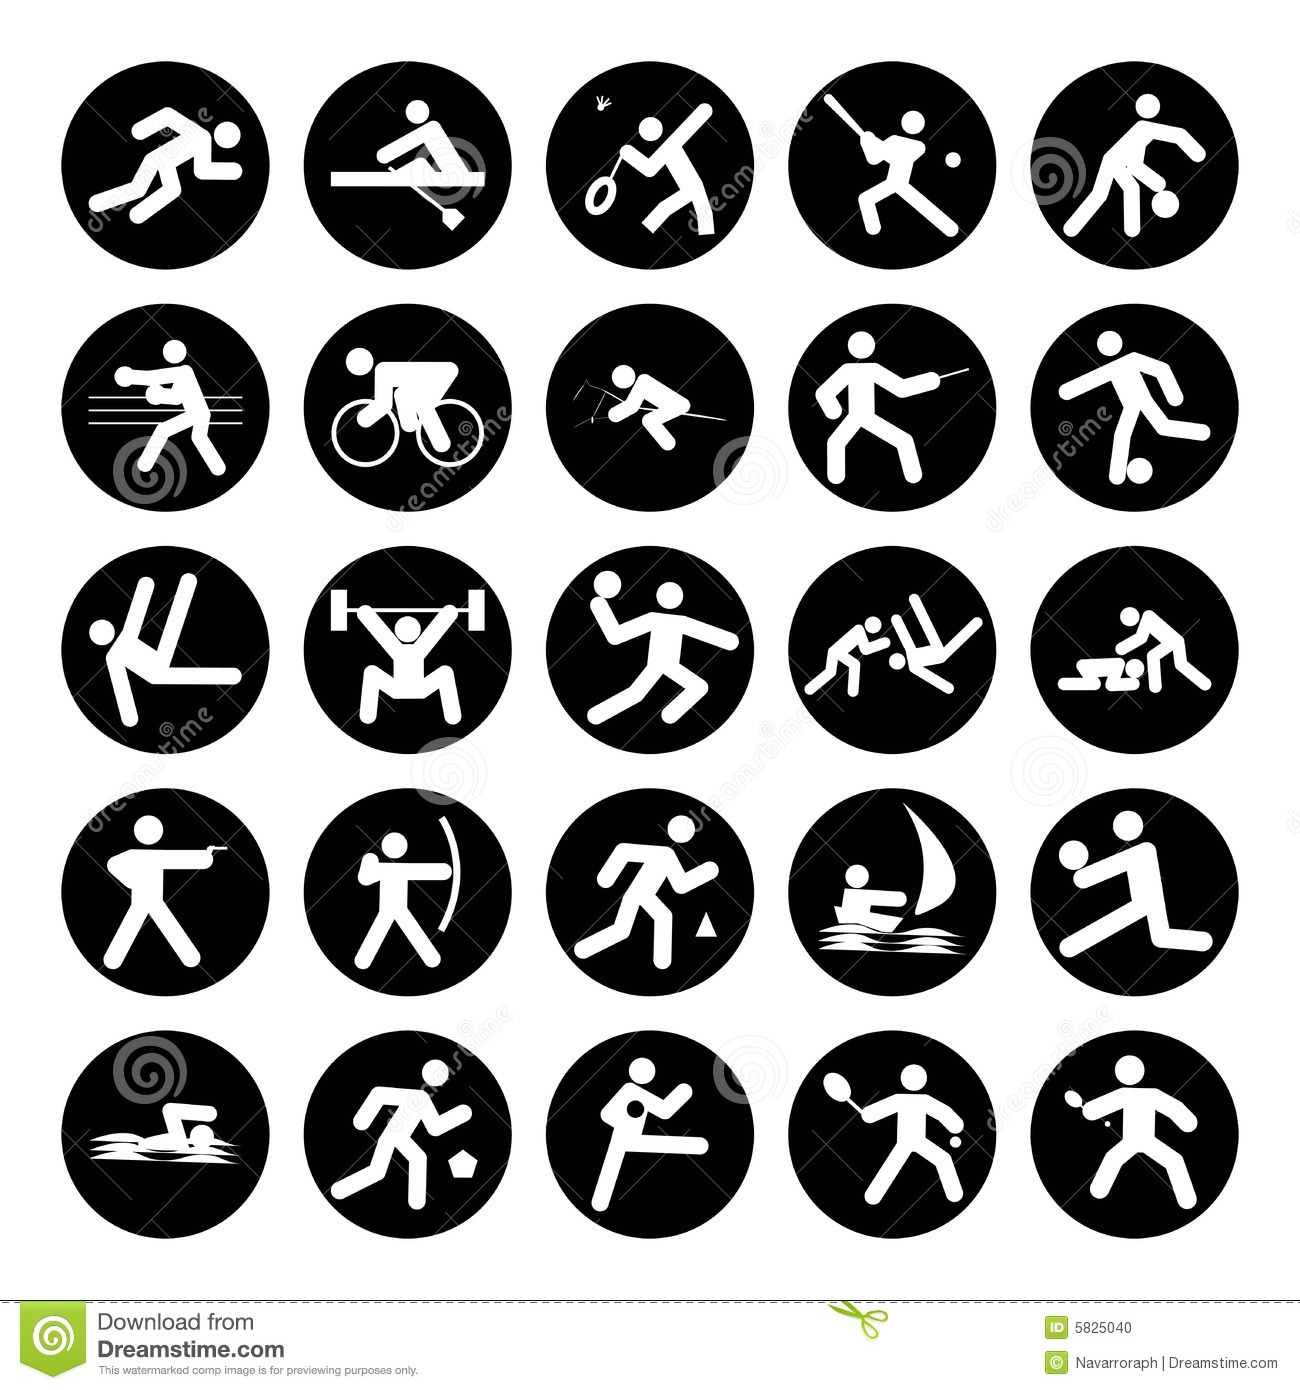 Logos of sports, olympics buttons black on white background.